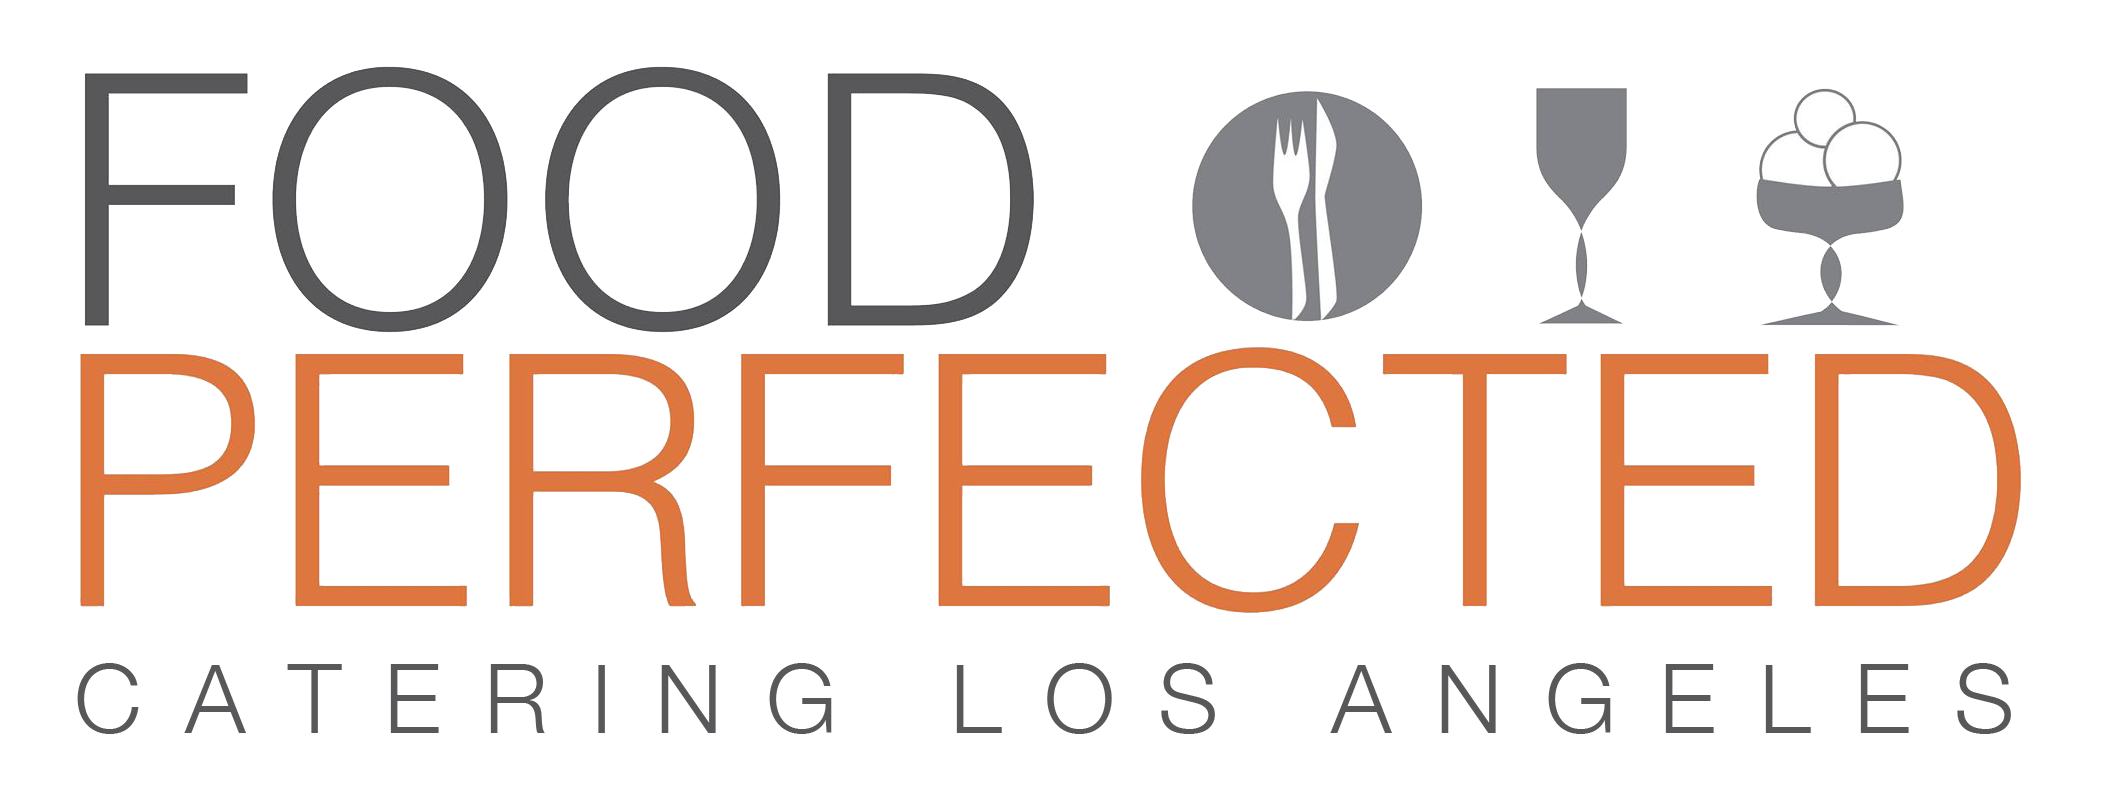 FoodPerfected